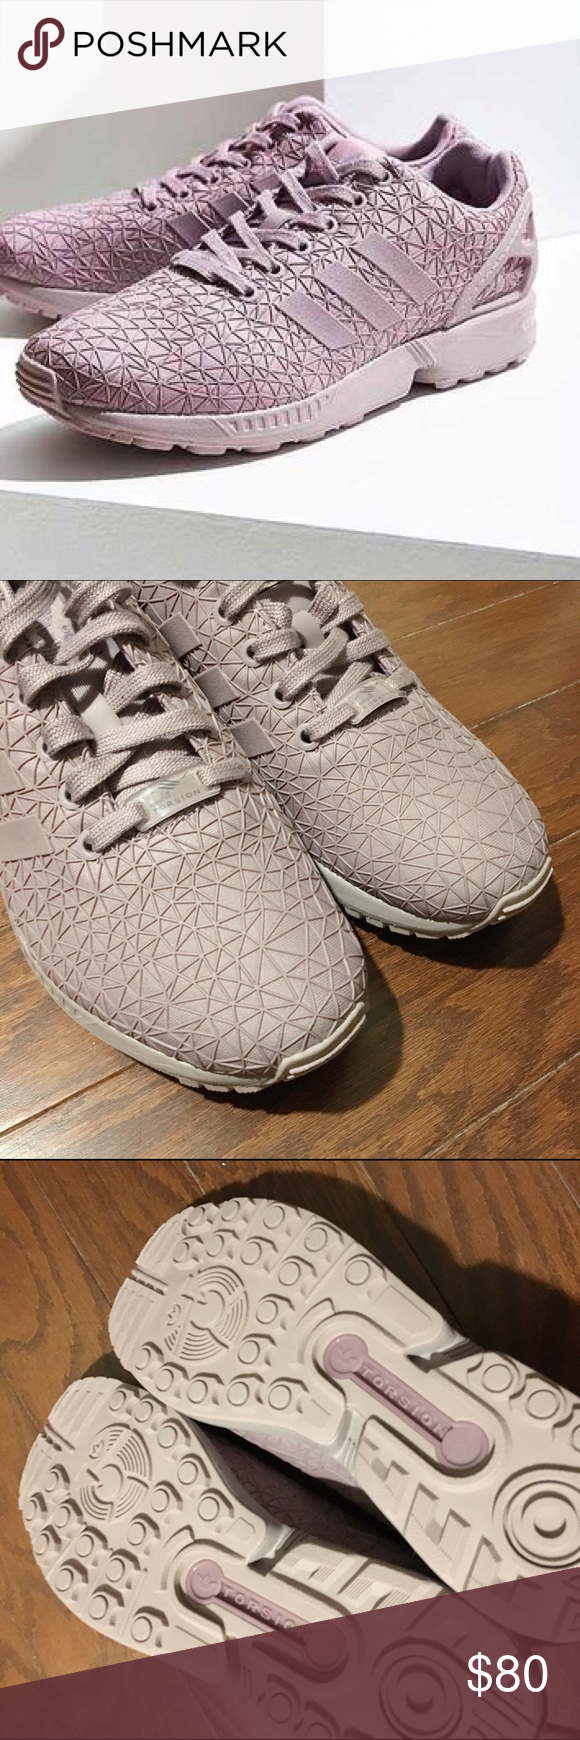 Adidas ZX Flux Lavender Sneaker Never worn before, slightly